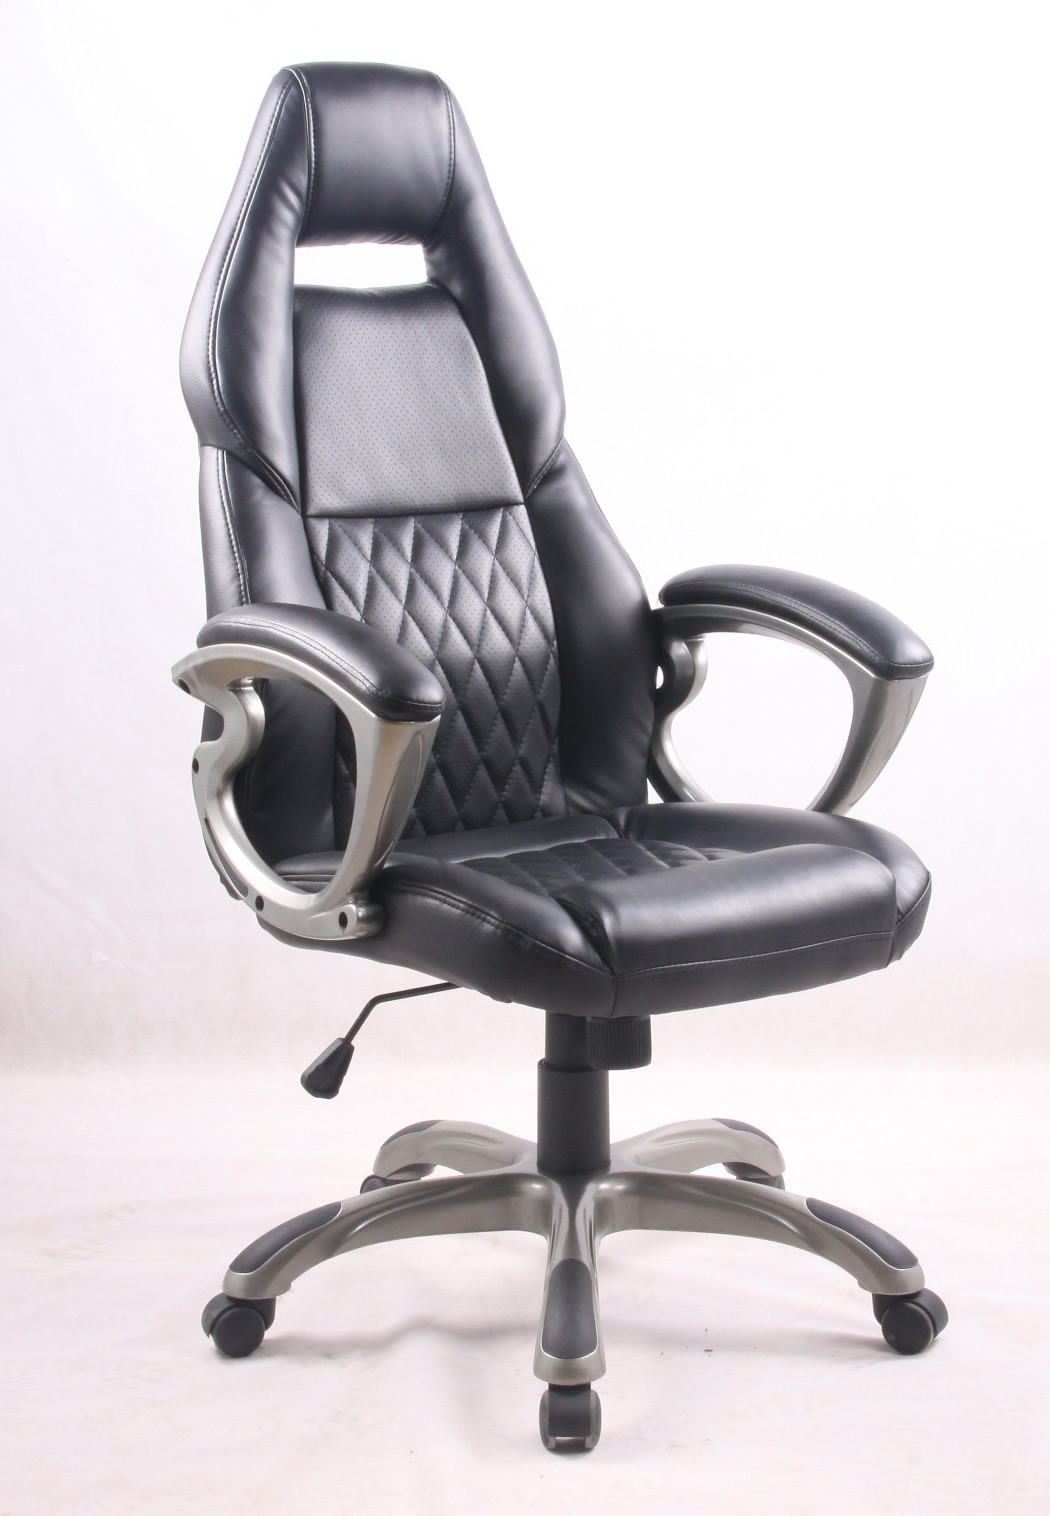 Black PU Porsche Racing Office Chair with Painting Armrest Executive Leather Office Chair  sc 1 st  Sport Racing Seats u0026 Bucket Racing Seats & Black PU Porsche Racing Office Chair with Painting Armrest Executive ...